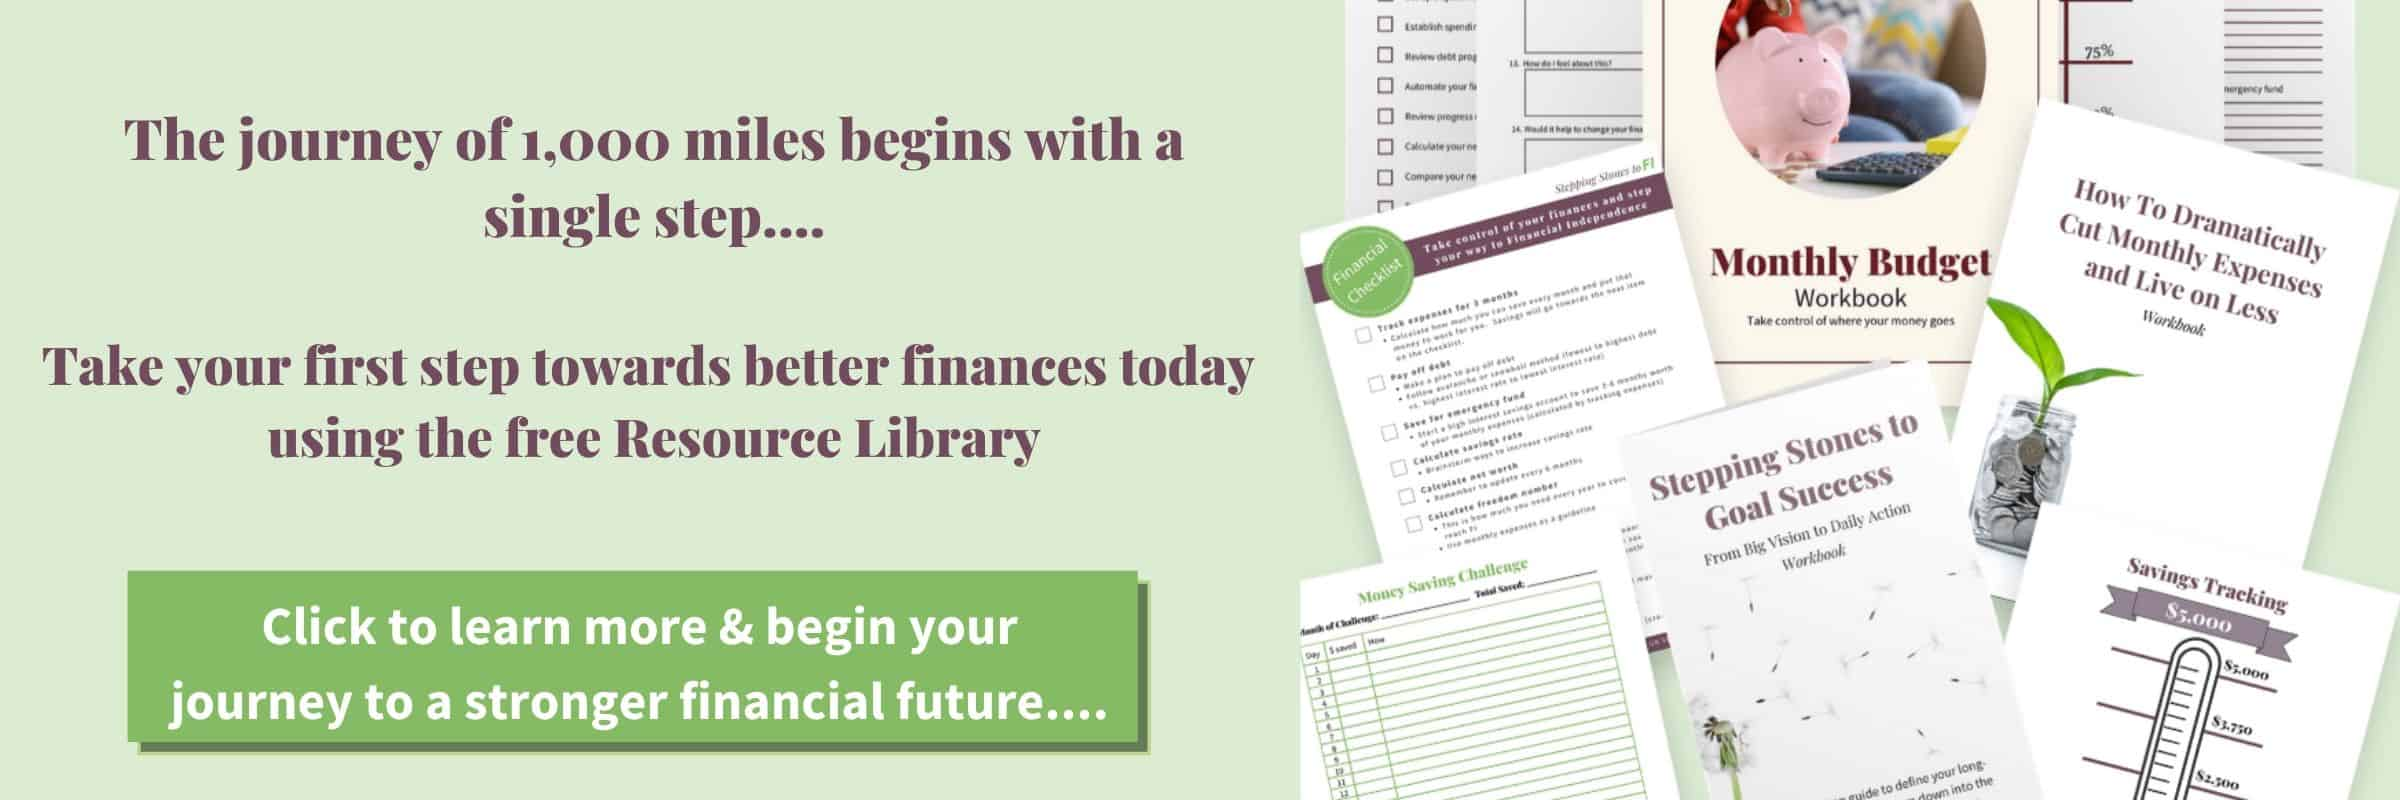 The journey of 1,000 miles begins with a single step. Take your first step towards better finance today using the free Resource Library.